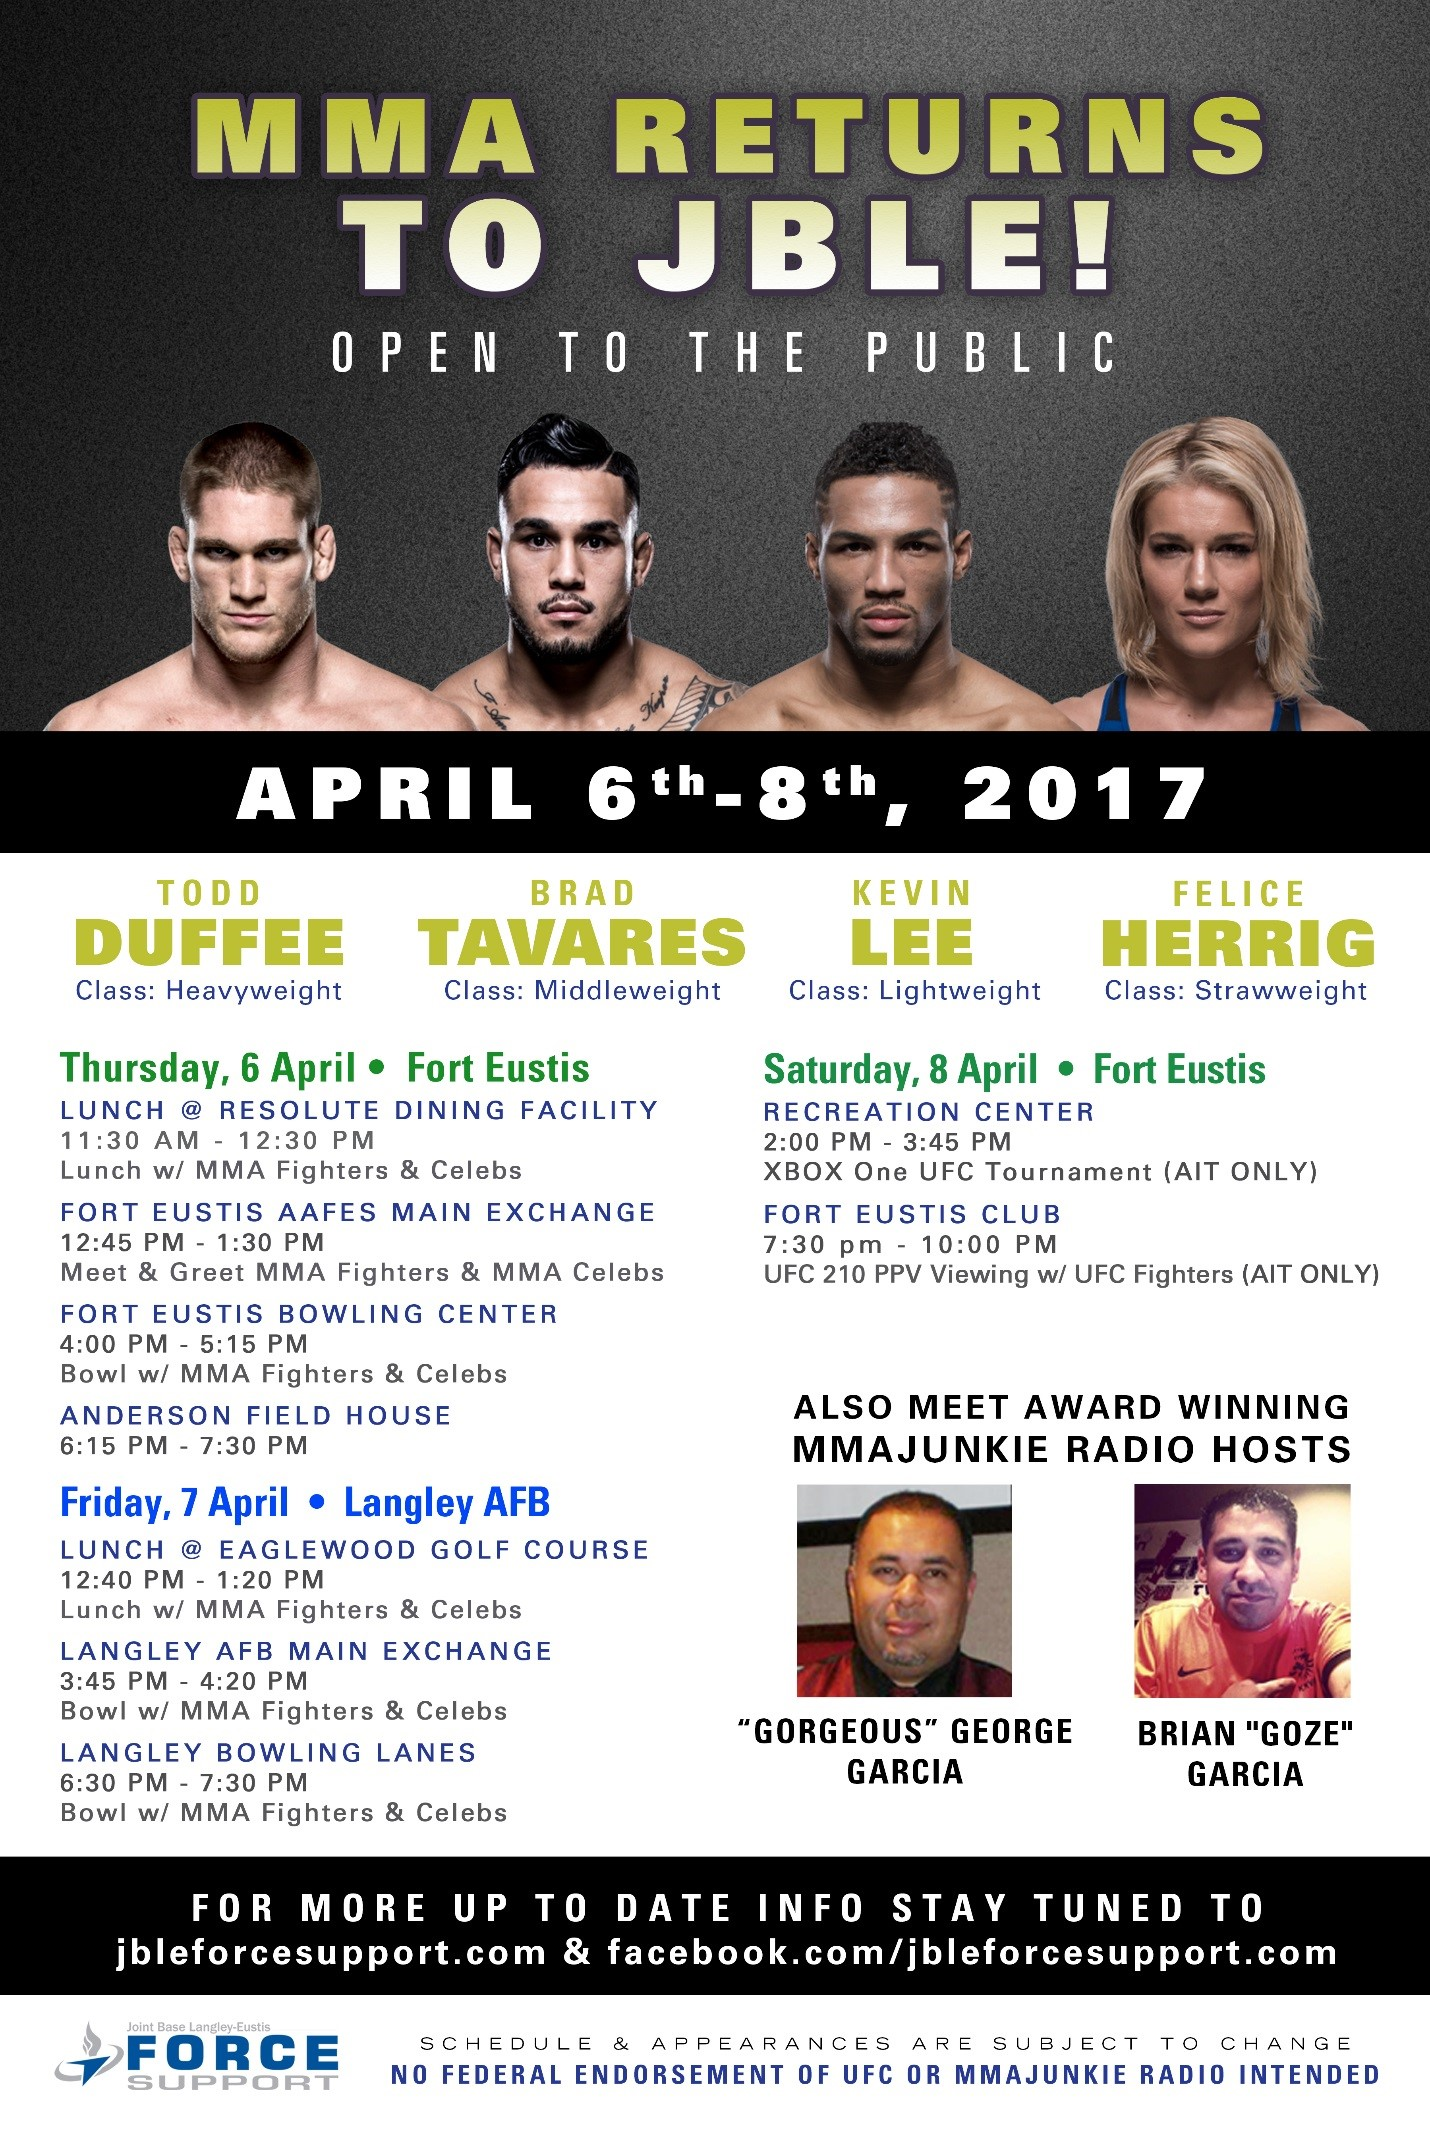 Ufc Athletes Mma Notables Return To Jble Joint Base Langley